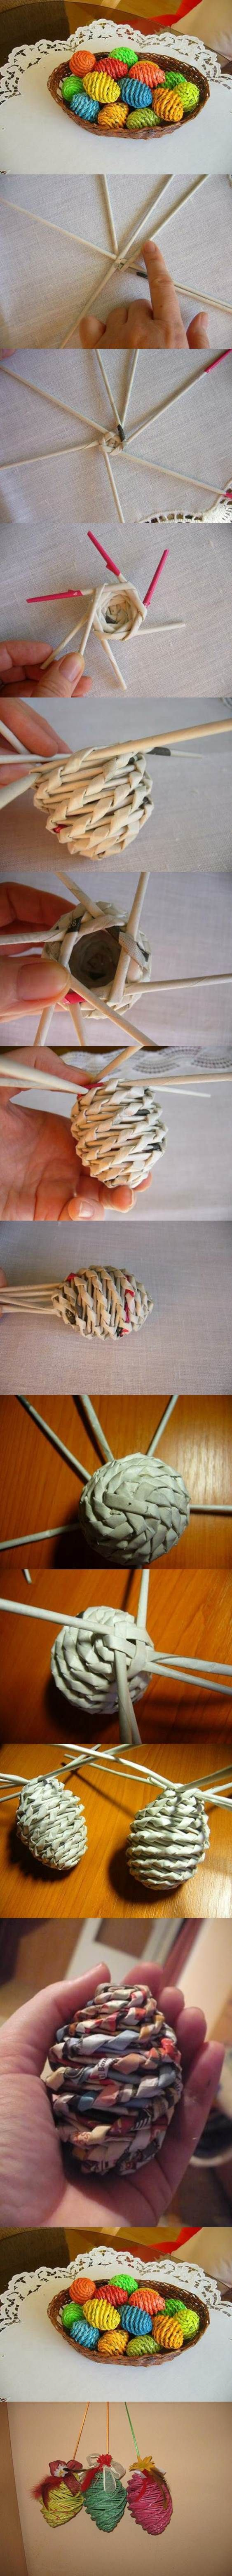 DIY Woven Paper Easter Eggs | How To Make Awesome Woven Easter Eggs. Quick and Fun DIY Easter Egg Design and More Cool Creative Crafts By DIY Ready. http://diyready.com/